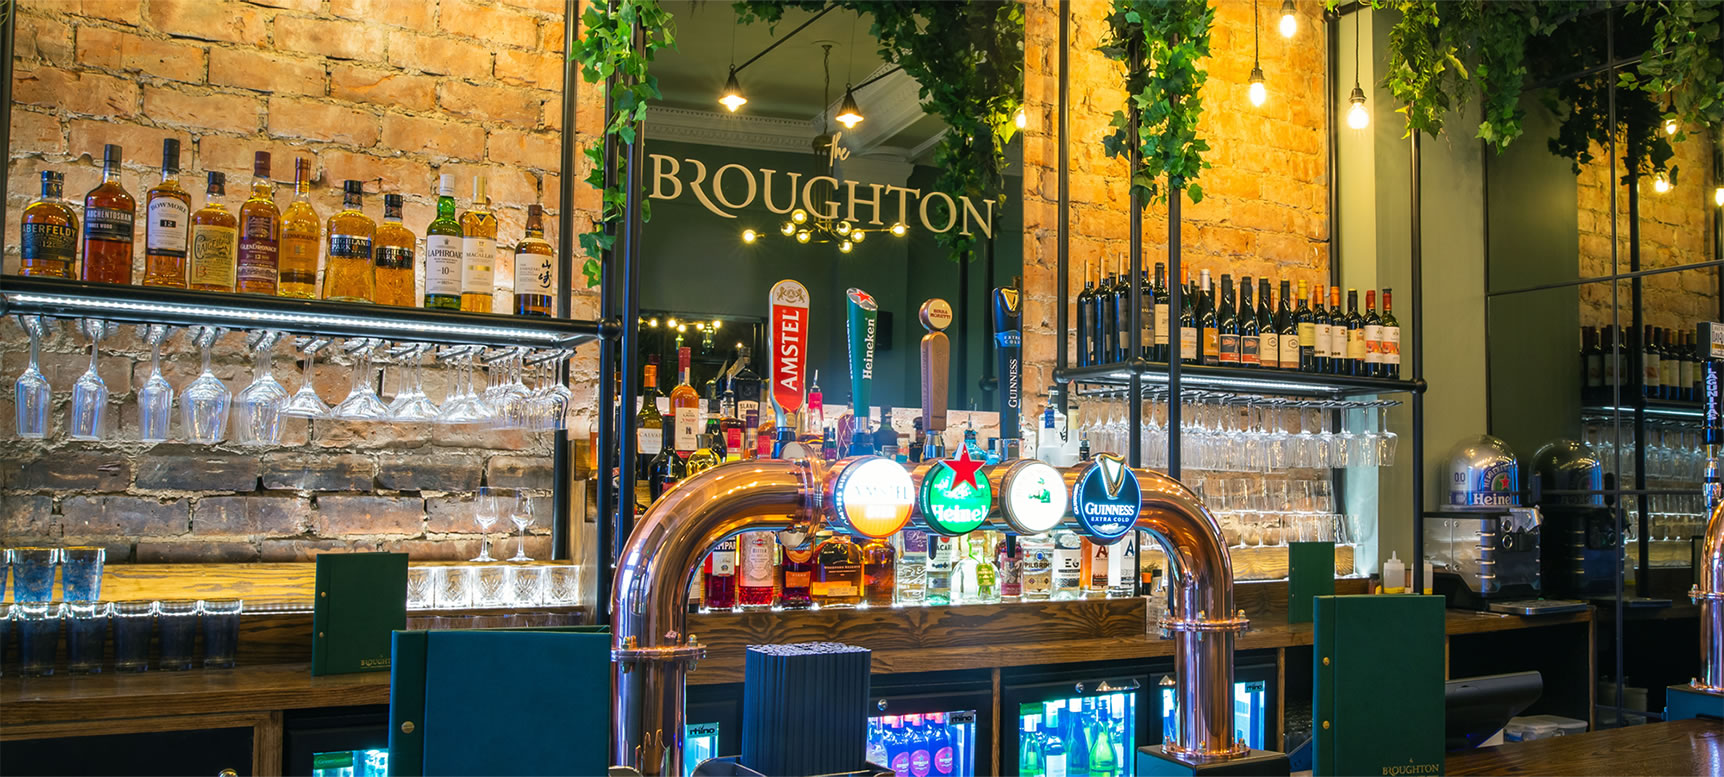 The Broughton Bar Edinburgh